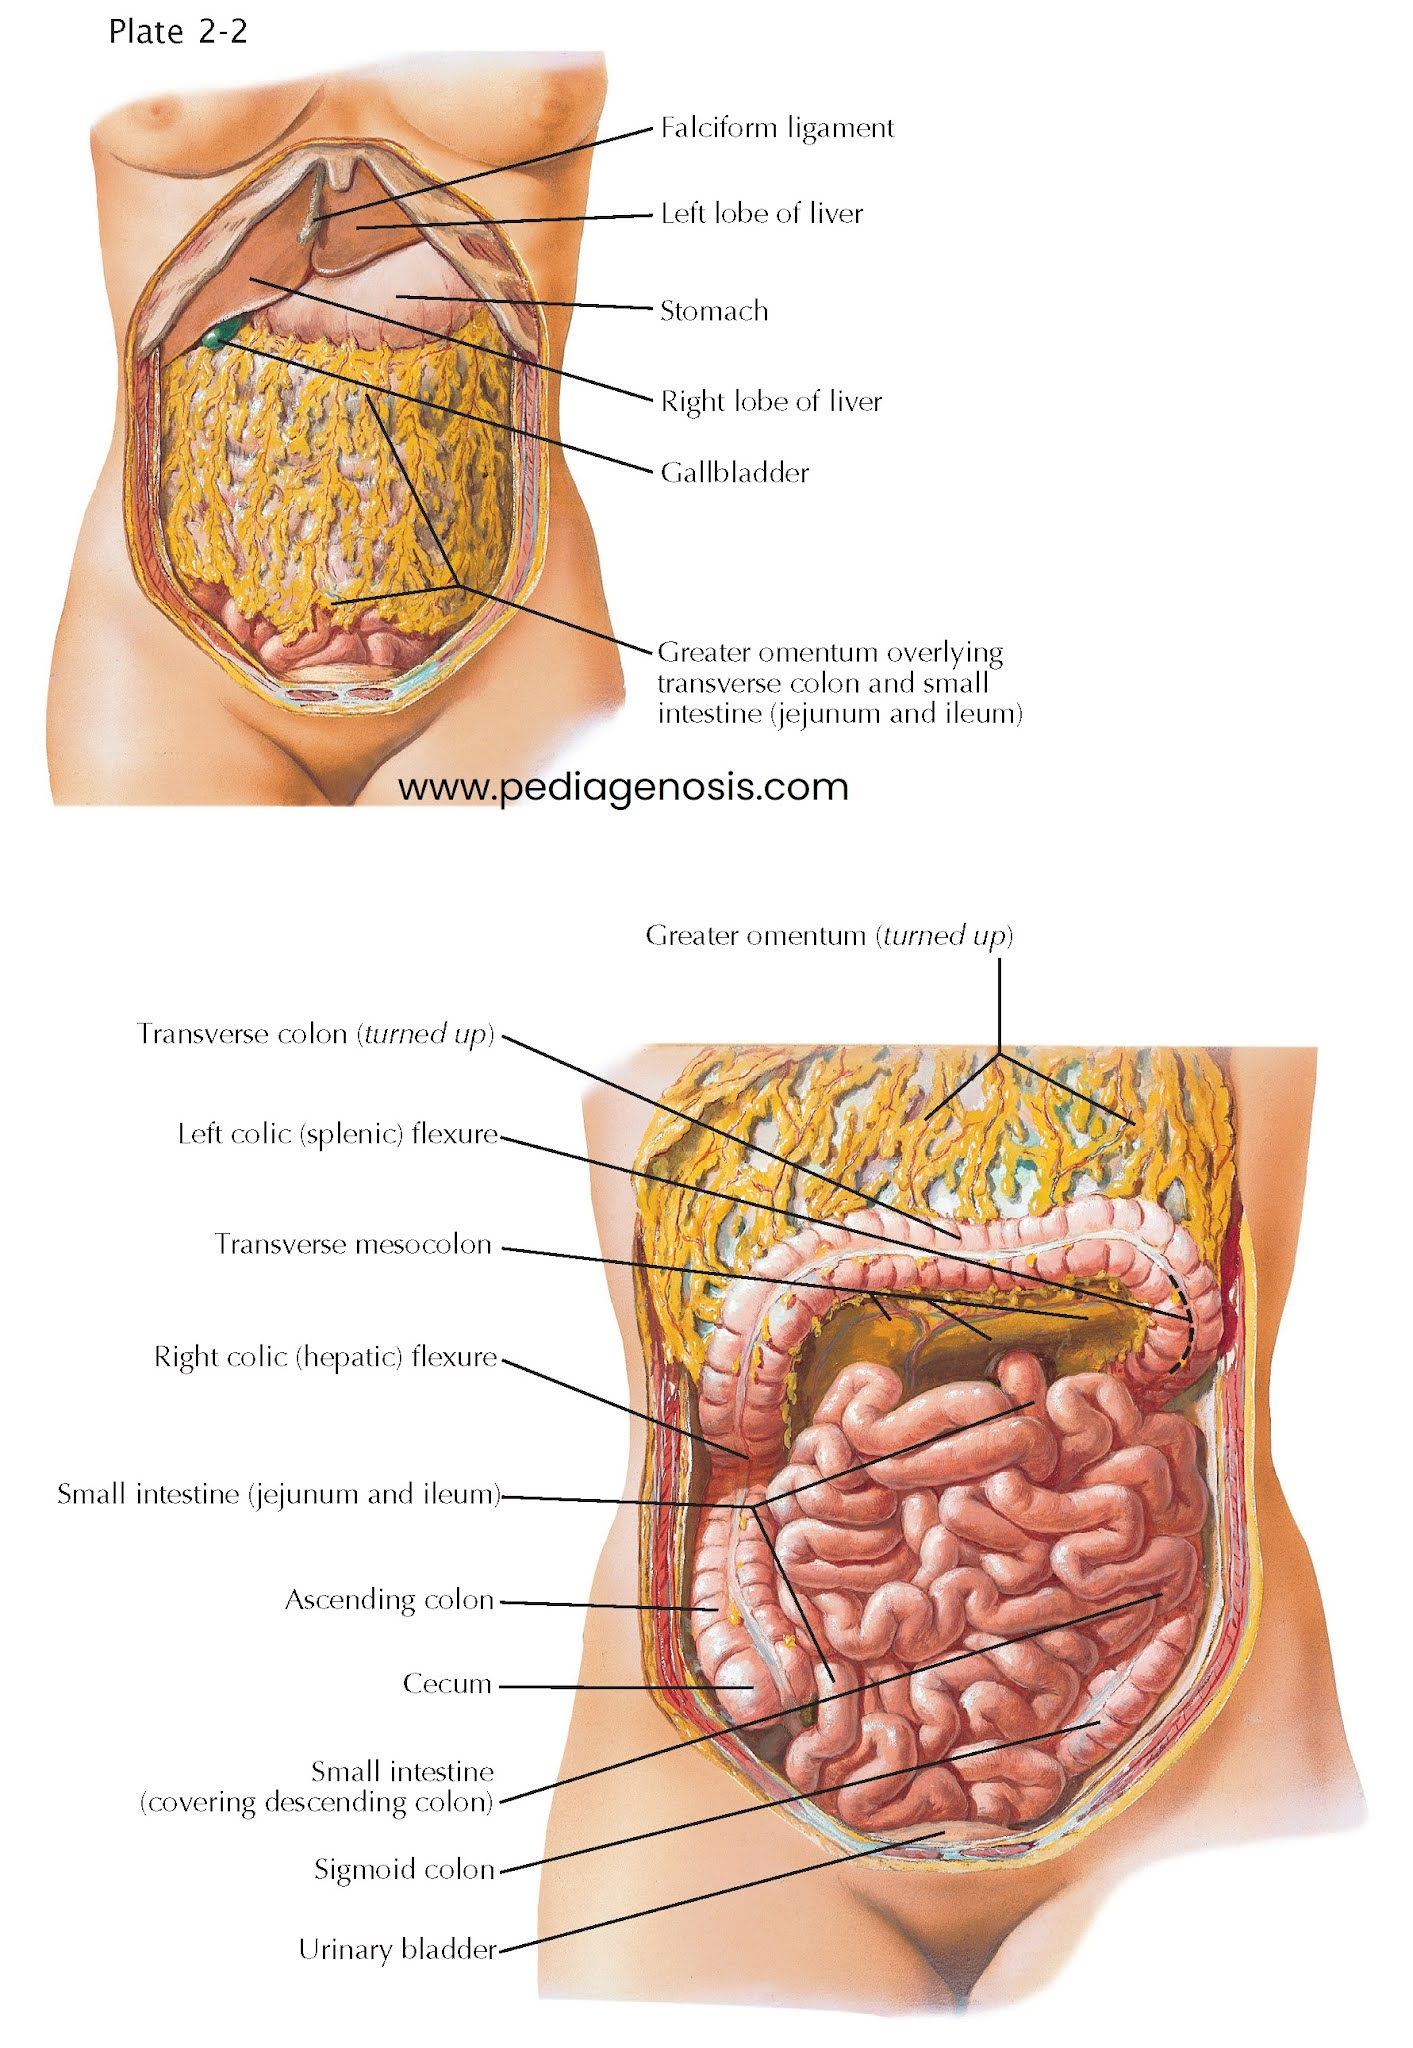 Topography and Relations of Small Bowel